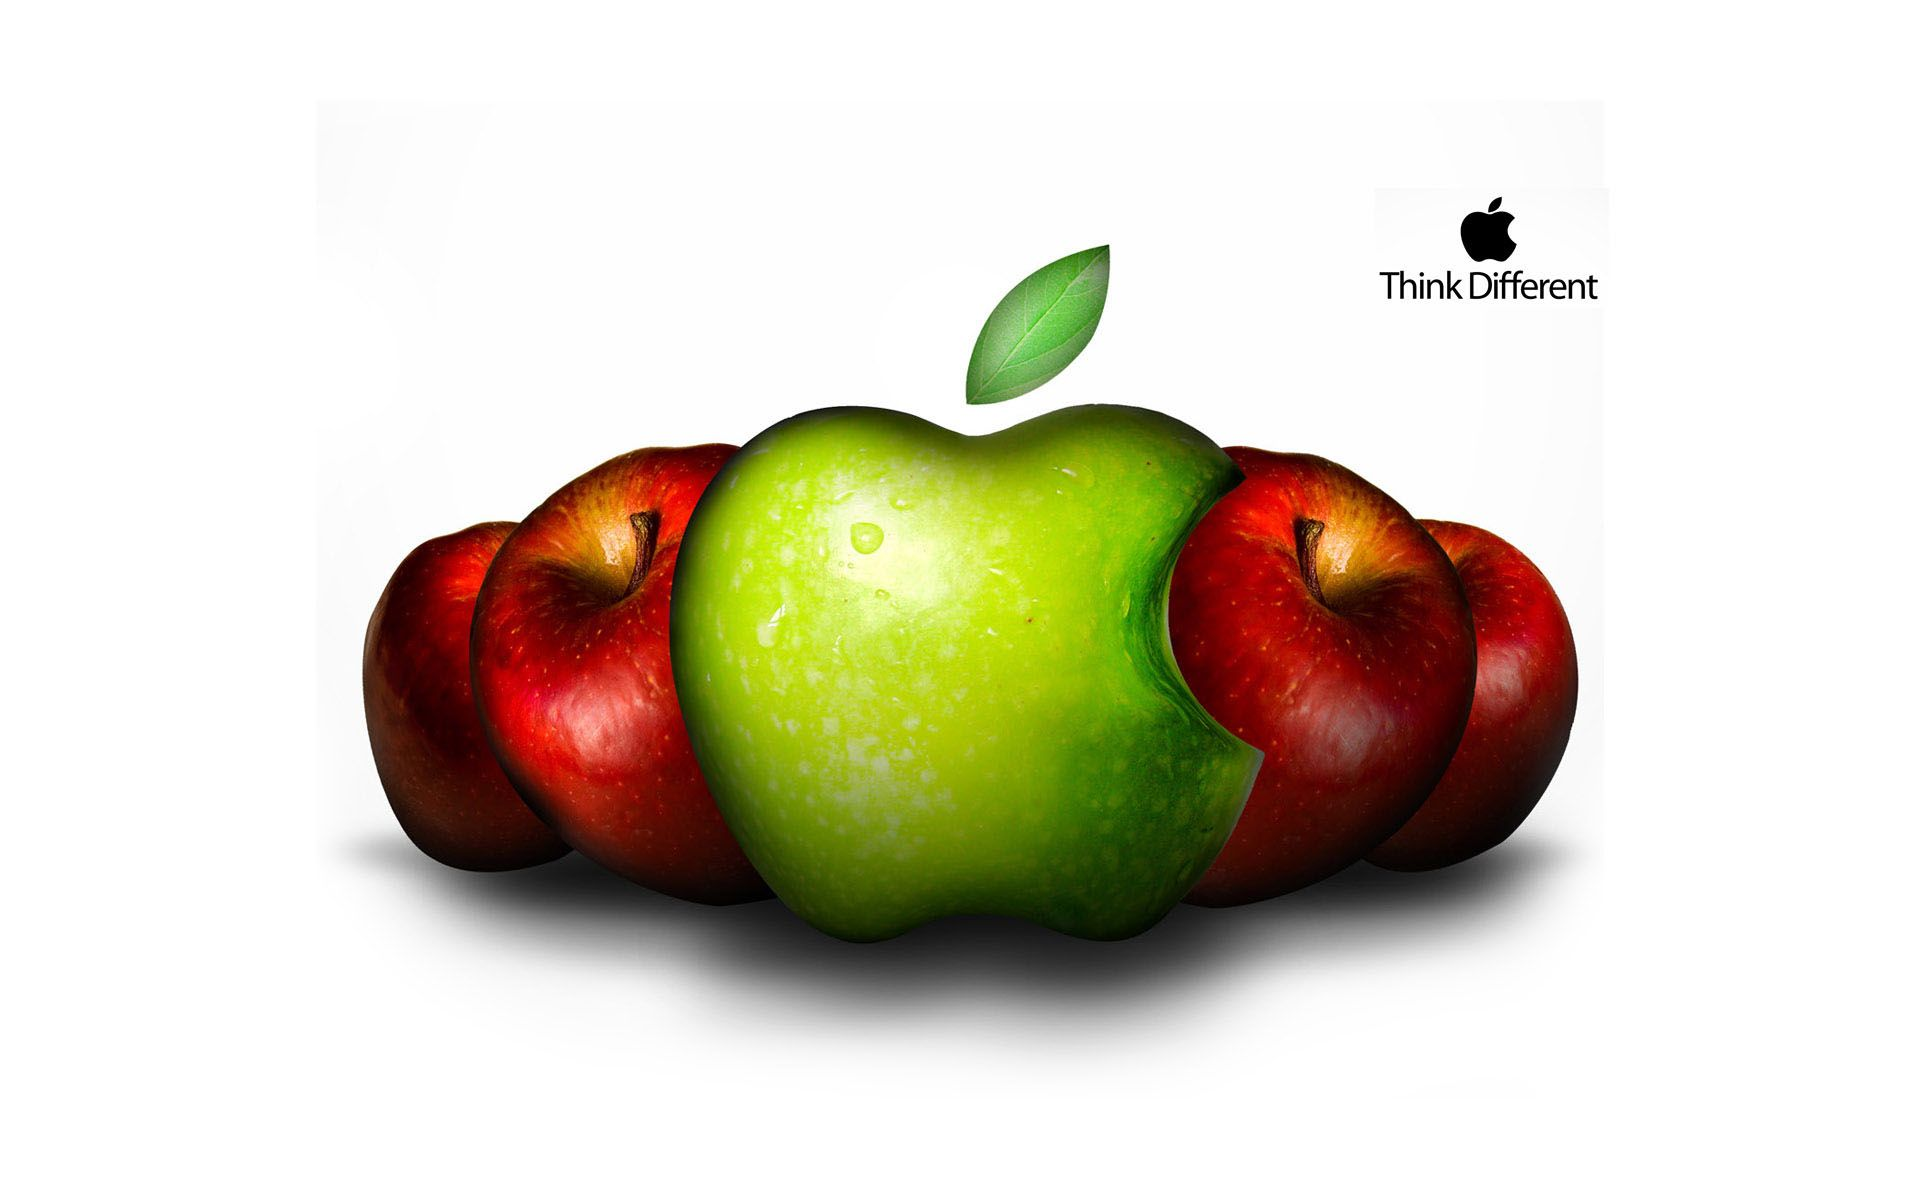 Top Green Apple Stock Photos Pictures and Images